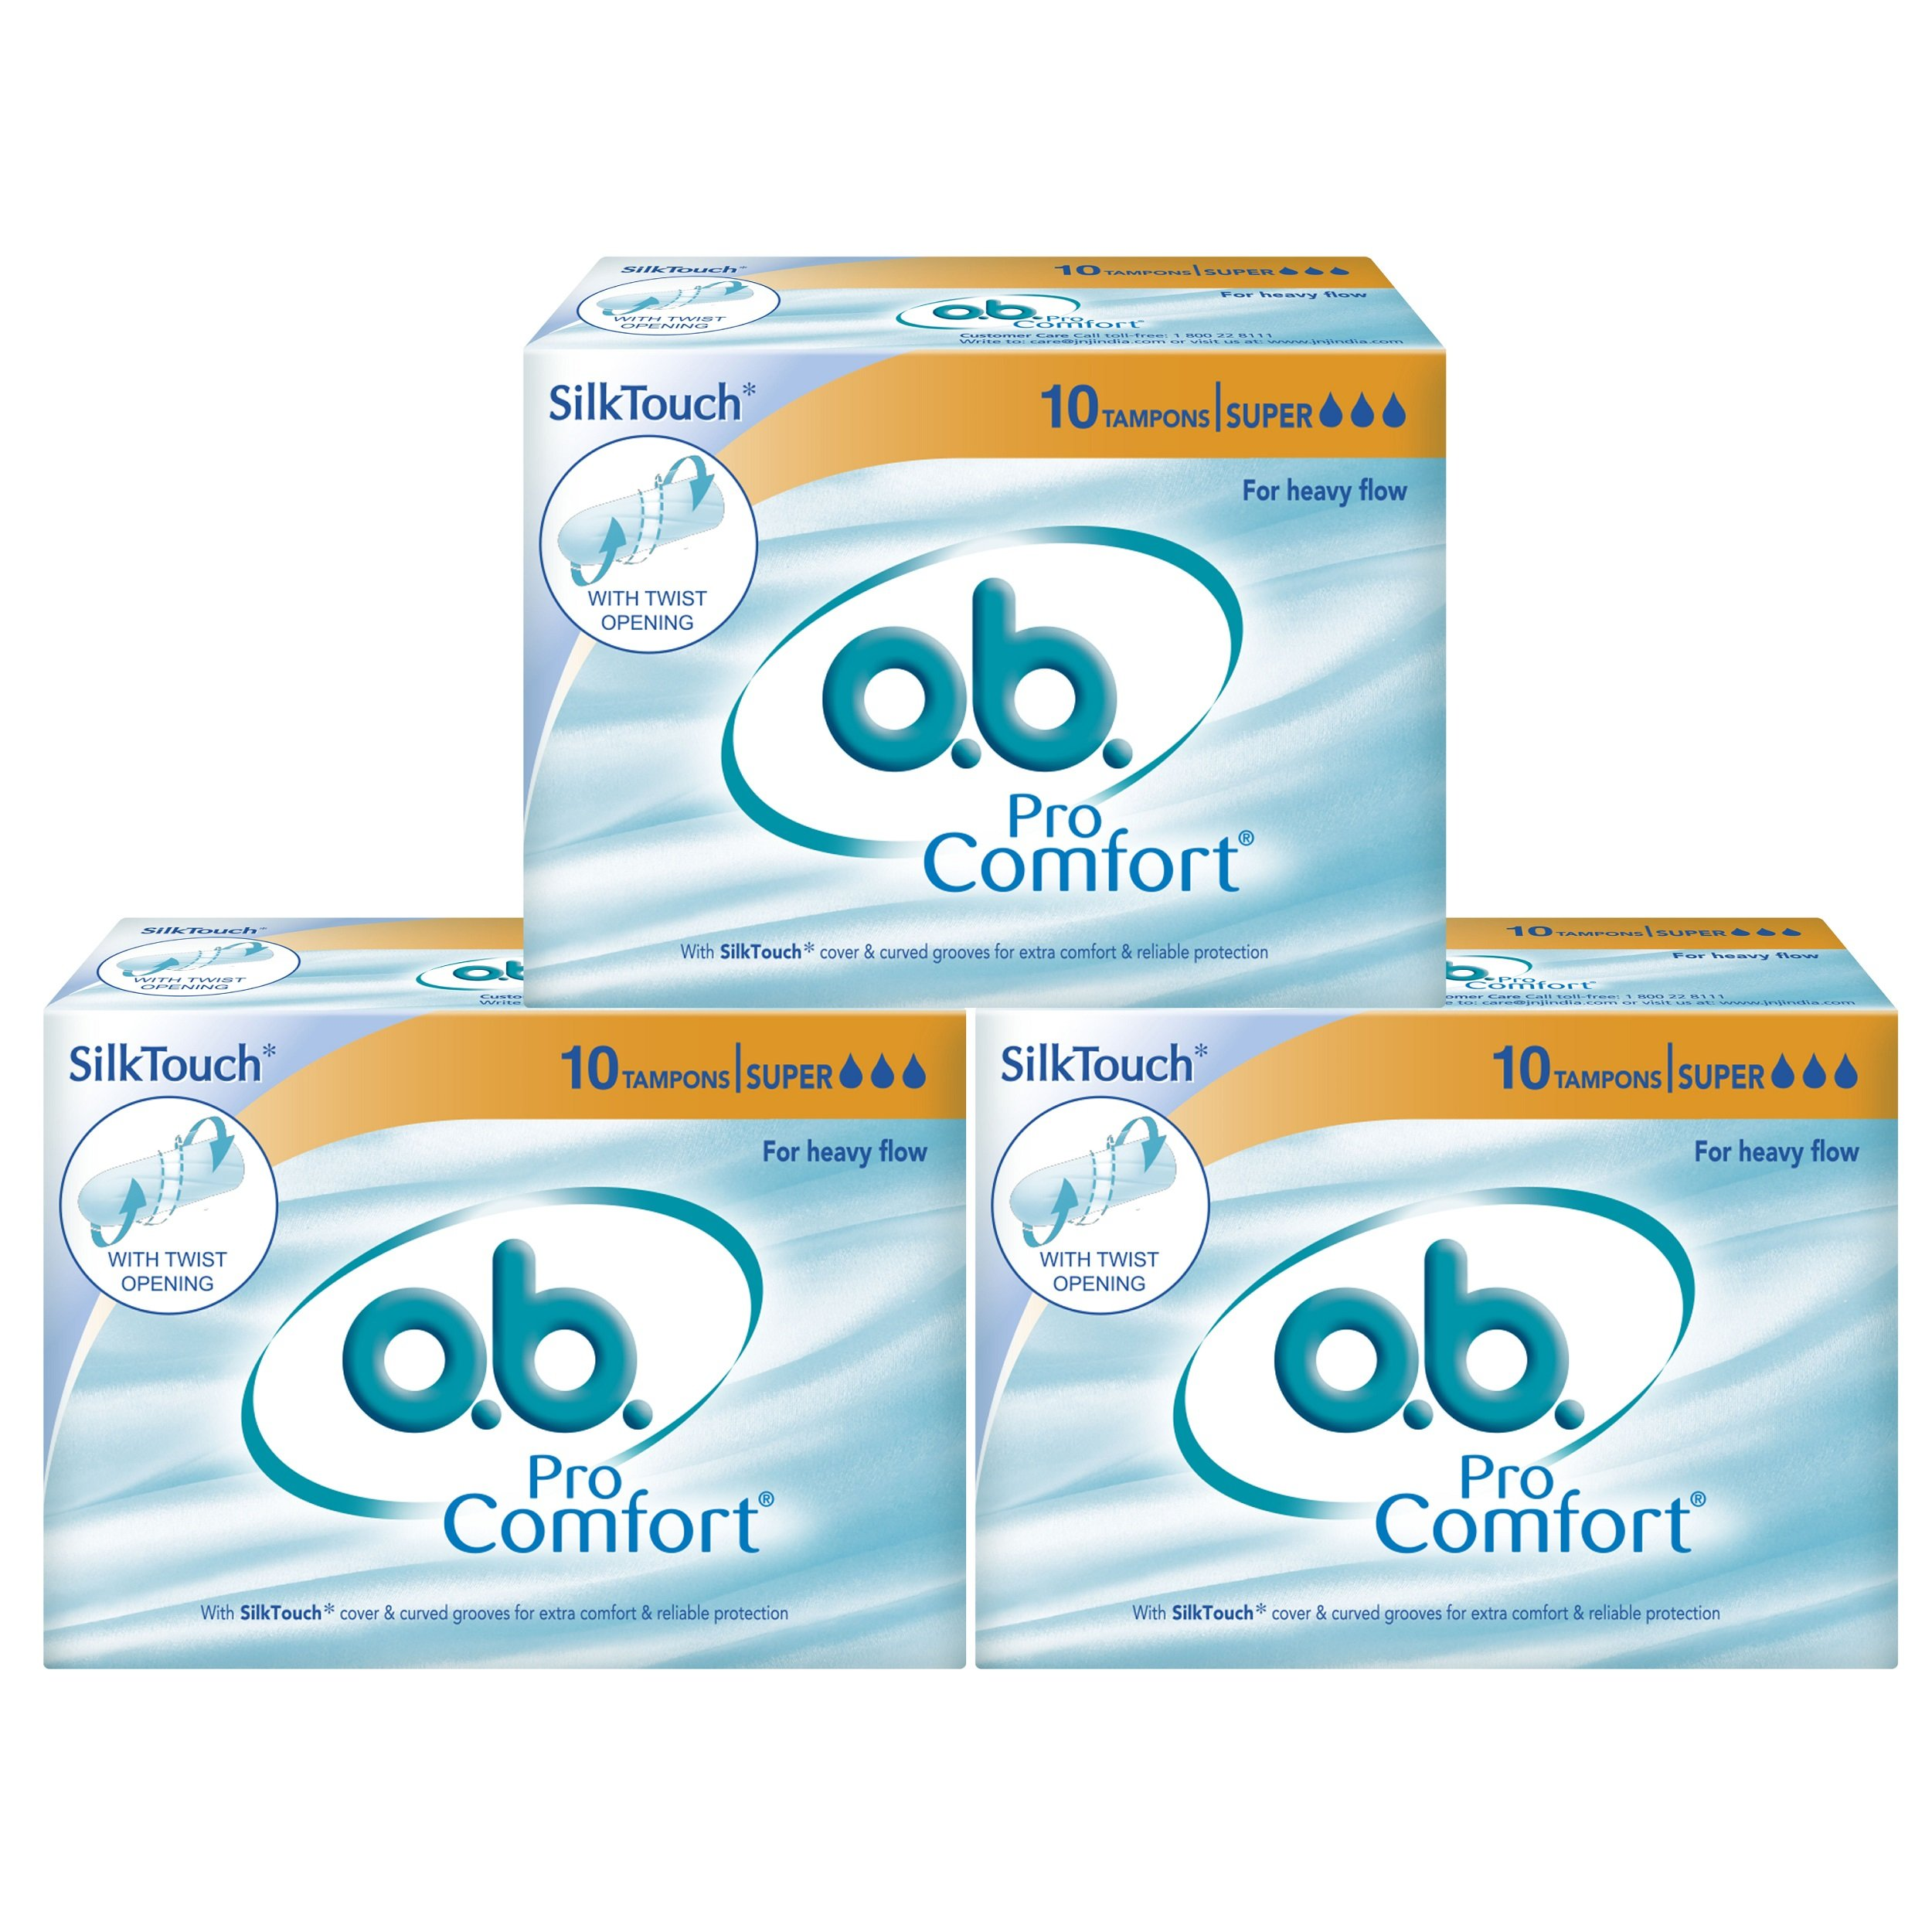 O.B Pro Comfort Super Tampons - 10 Pieces (Heavy Flow, Pack of 3) product image